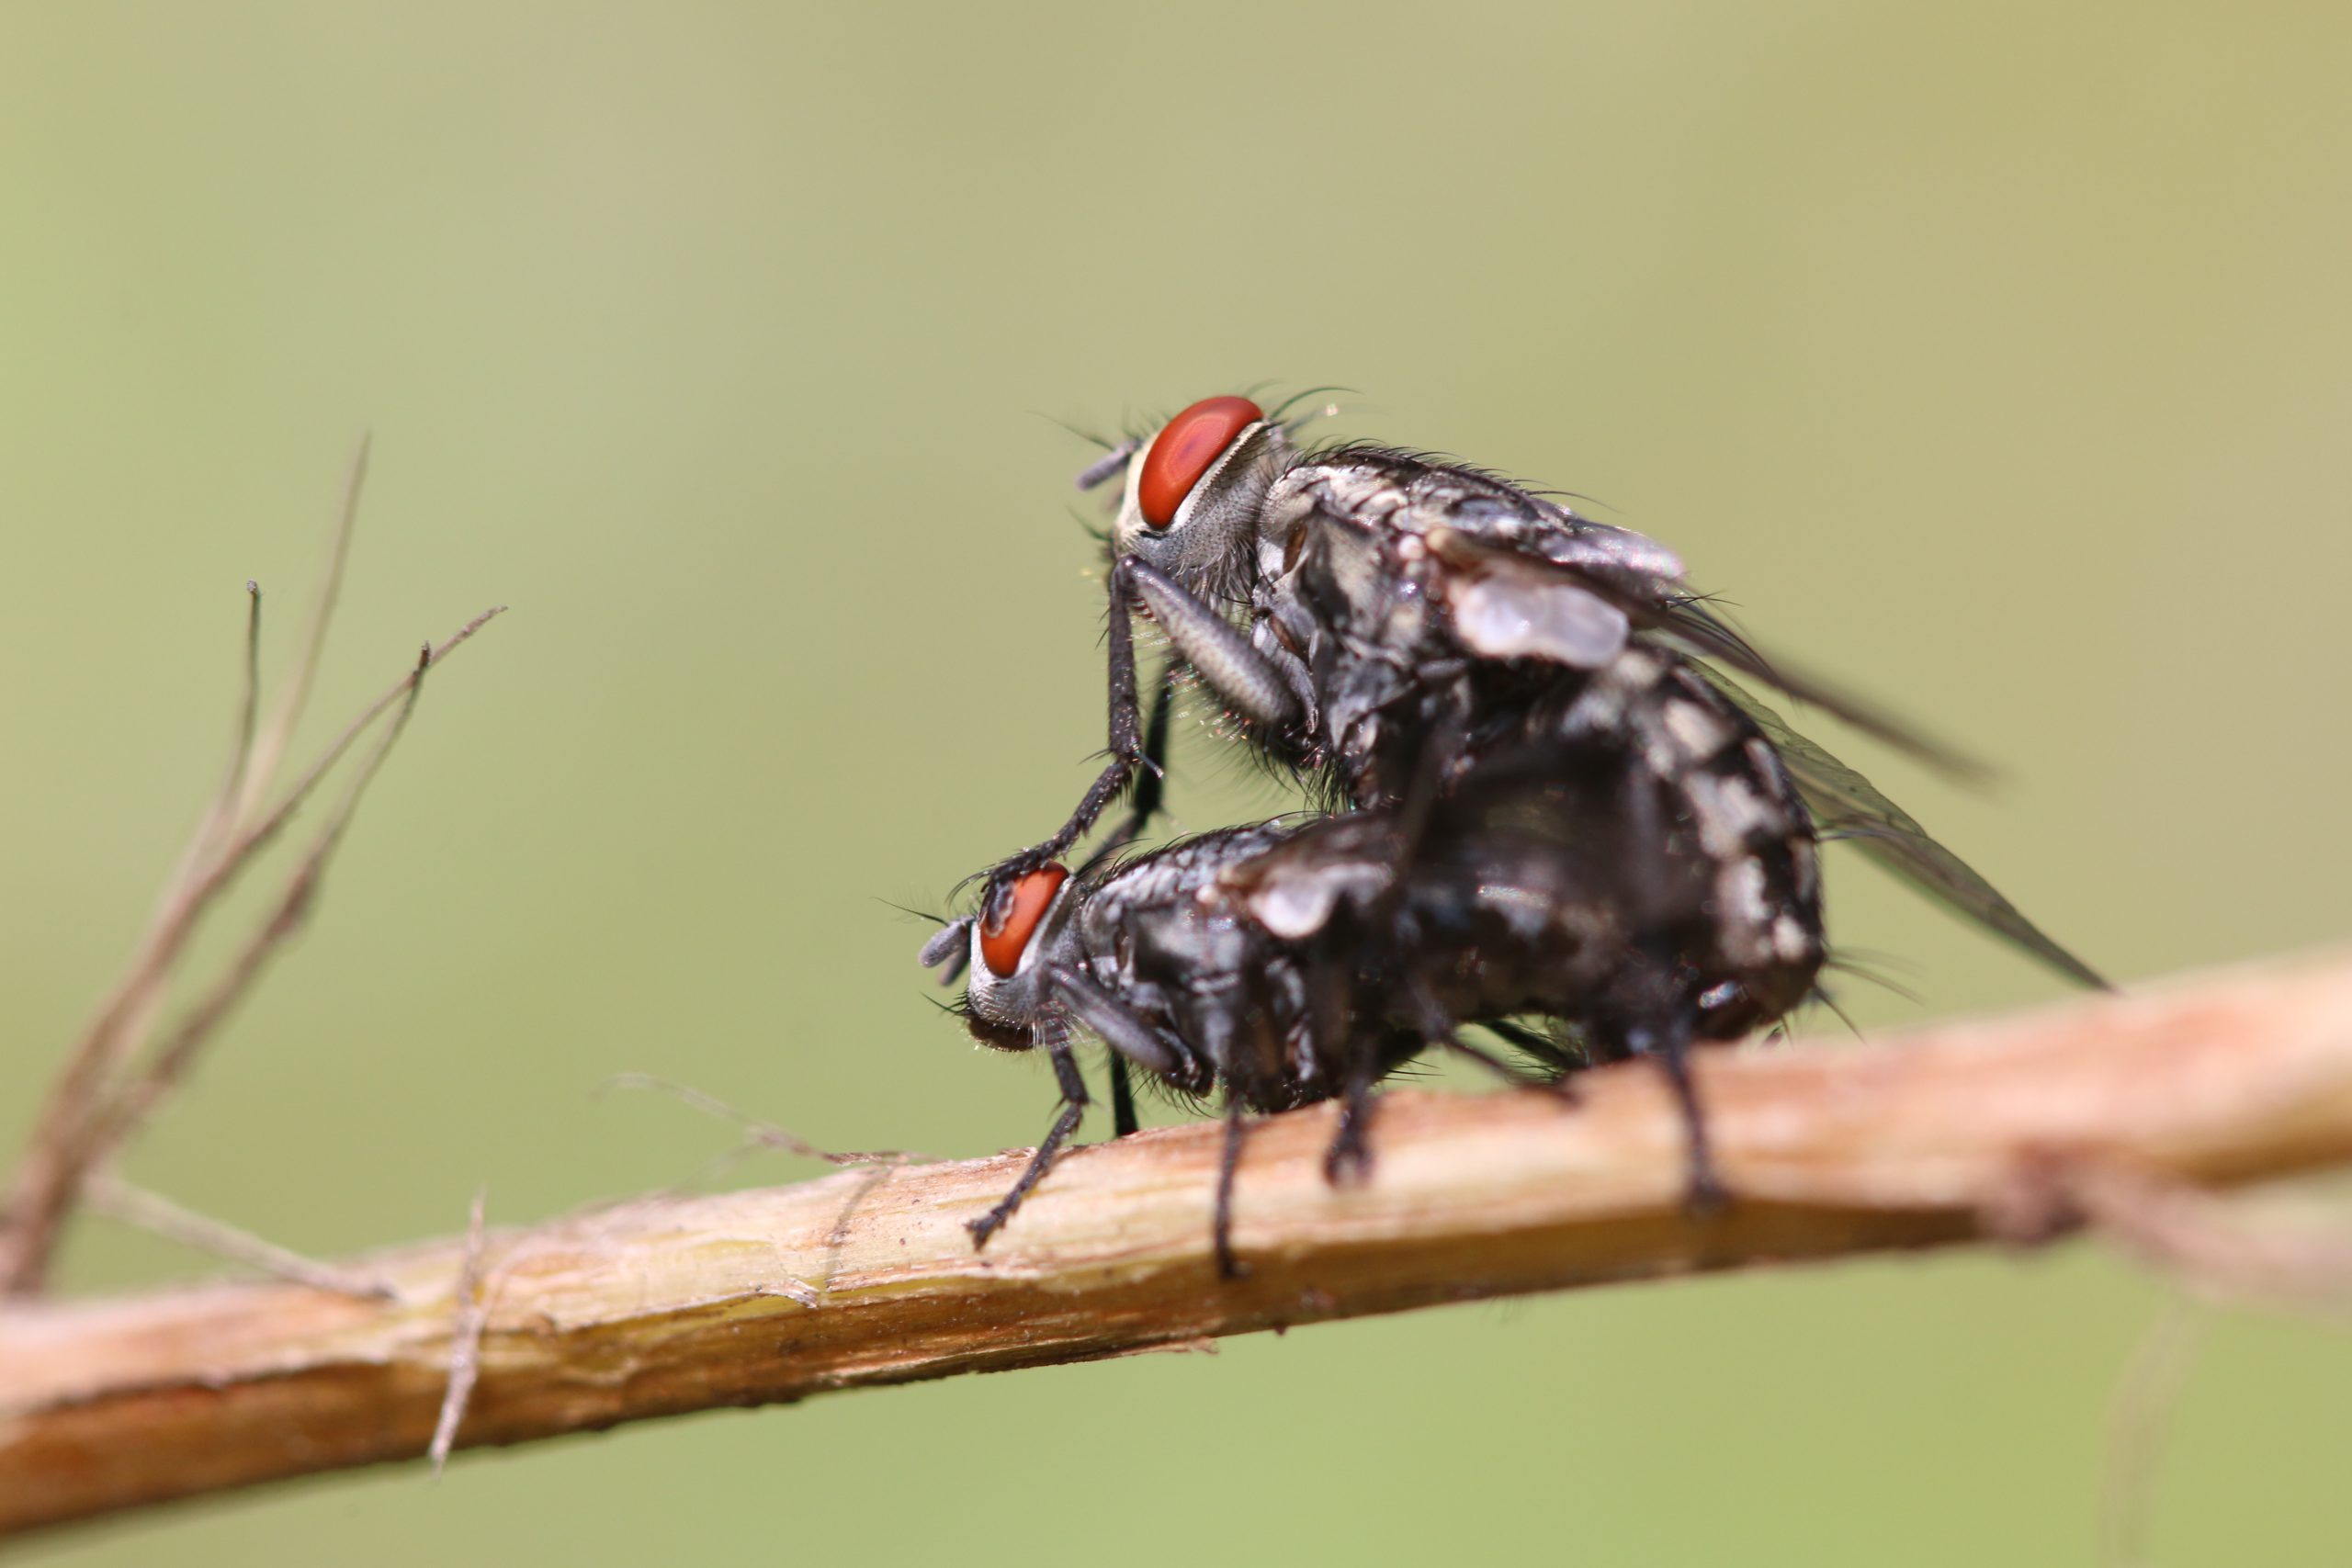 Flies on a plant